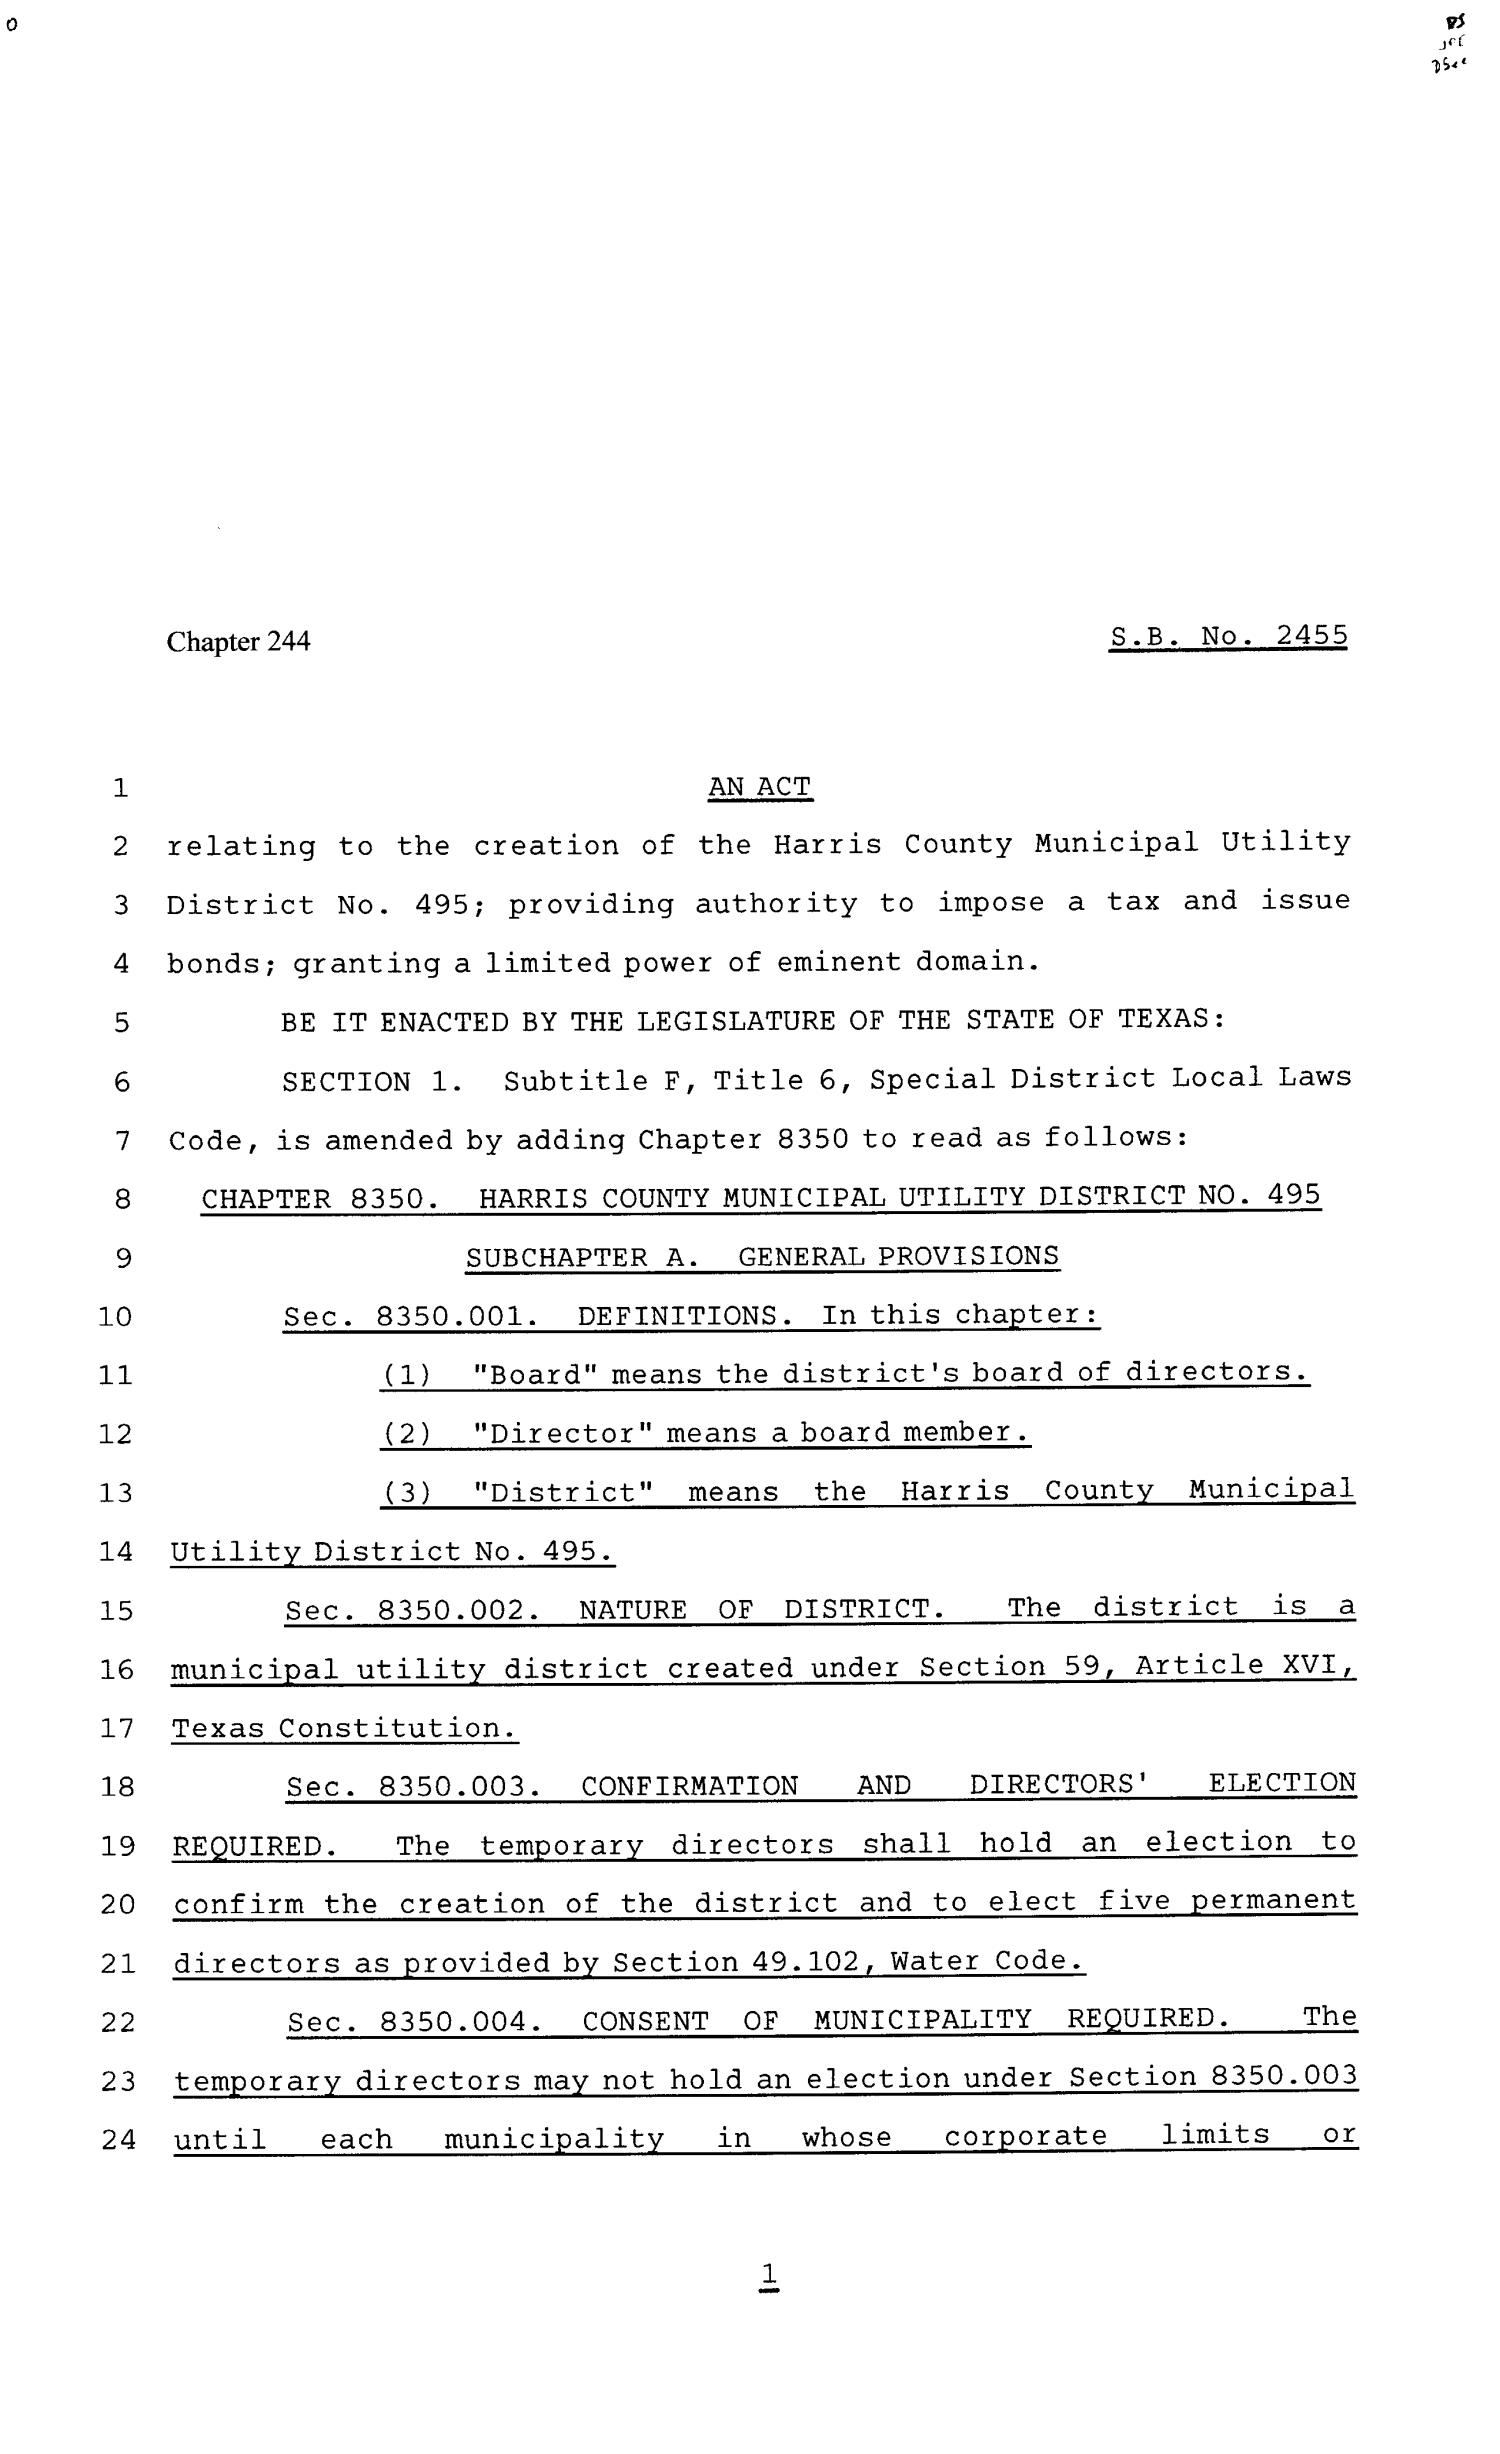 81st Texas Legislature, Senate Bill 2455, Chapter 244                                                                                                      [Sequence #]: 1 of 11